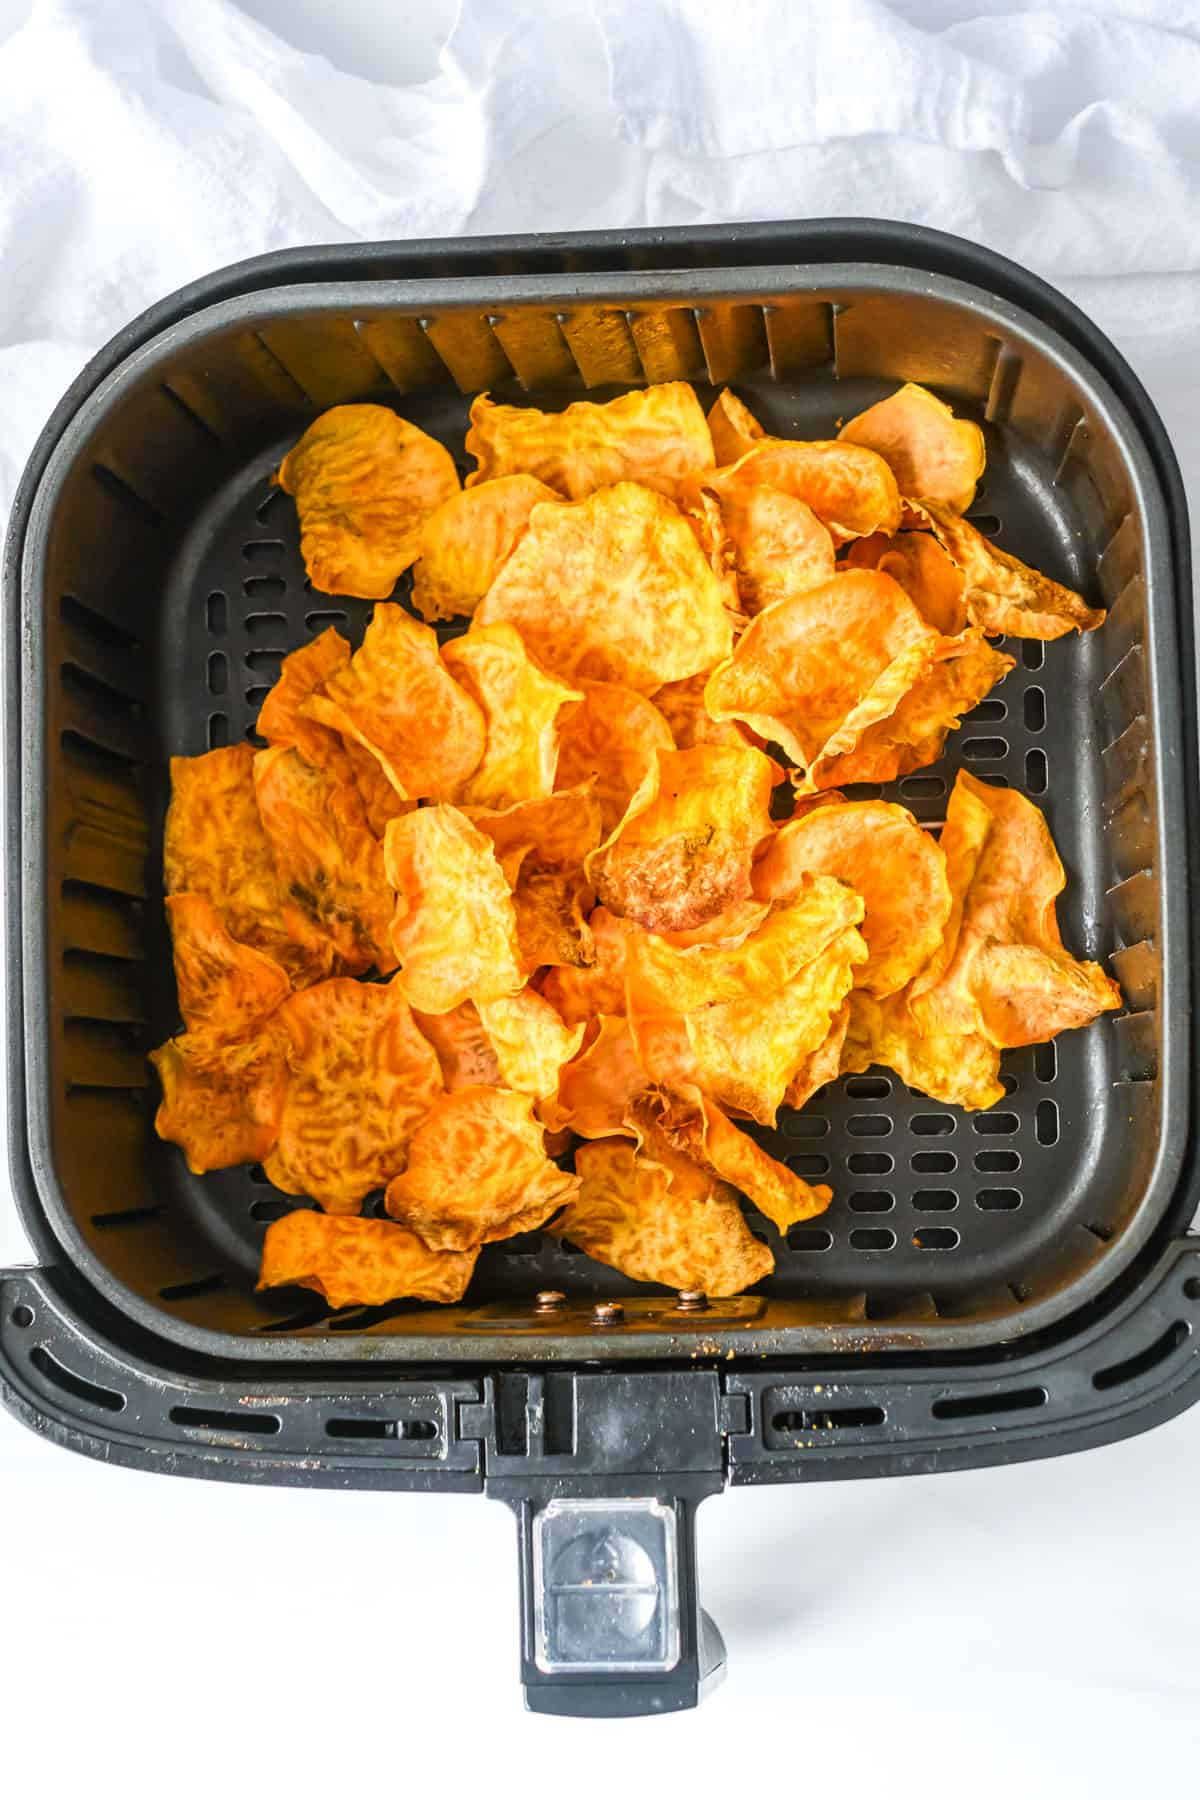 top down view of the cooked sweet potato chips inside the air fryer basket